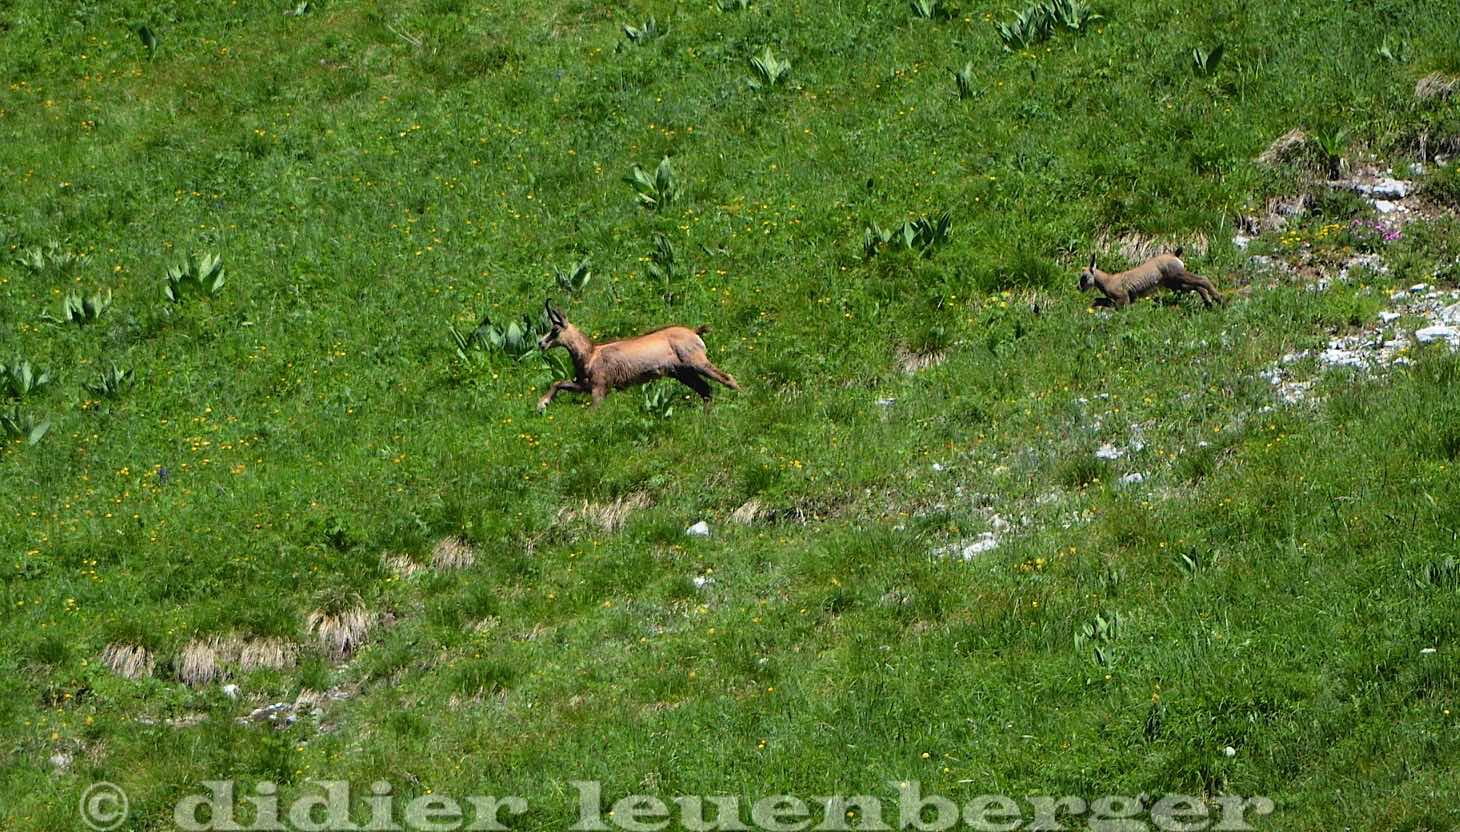 SUISSE MORTEYS N7100 SELECT 23 JUIN 2016-158.jpg